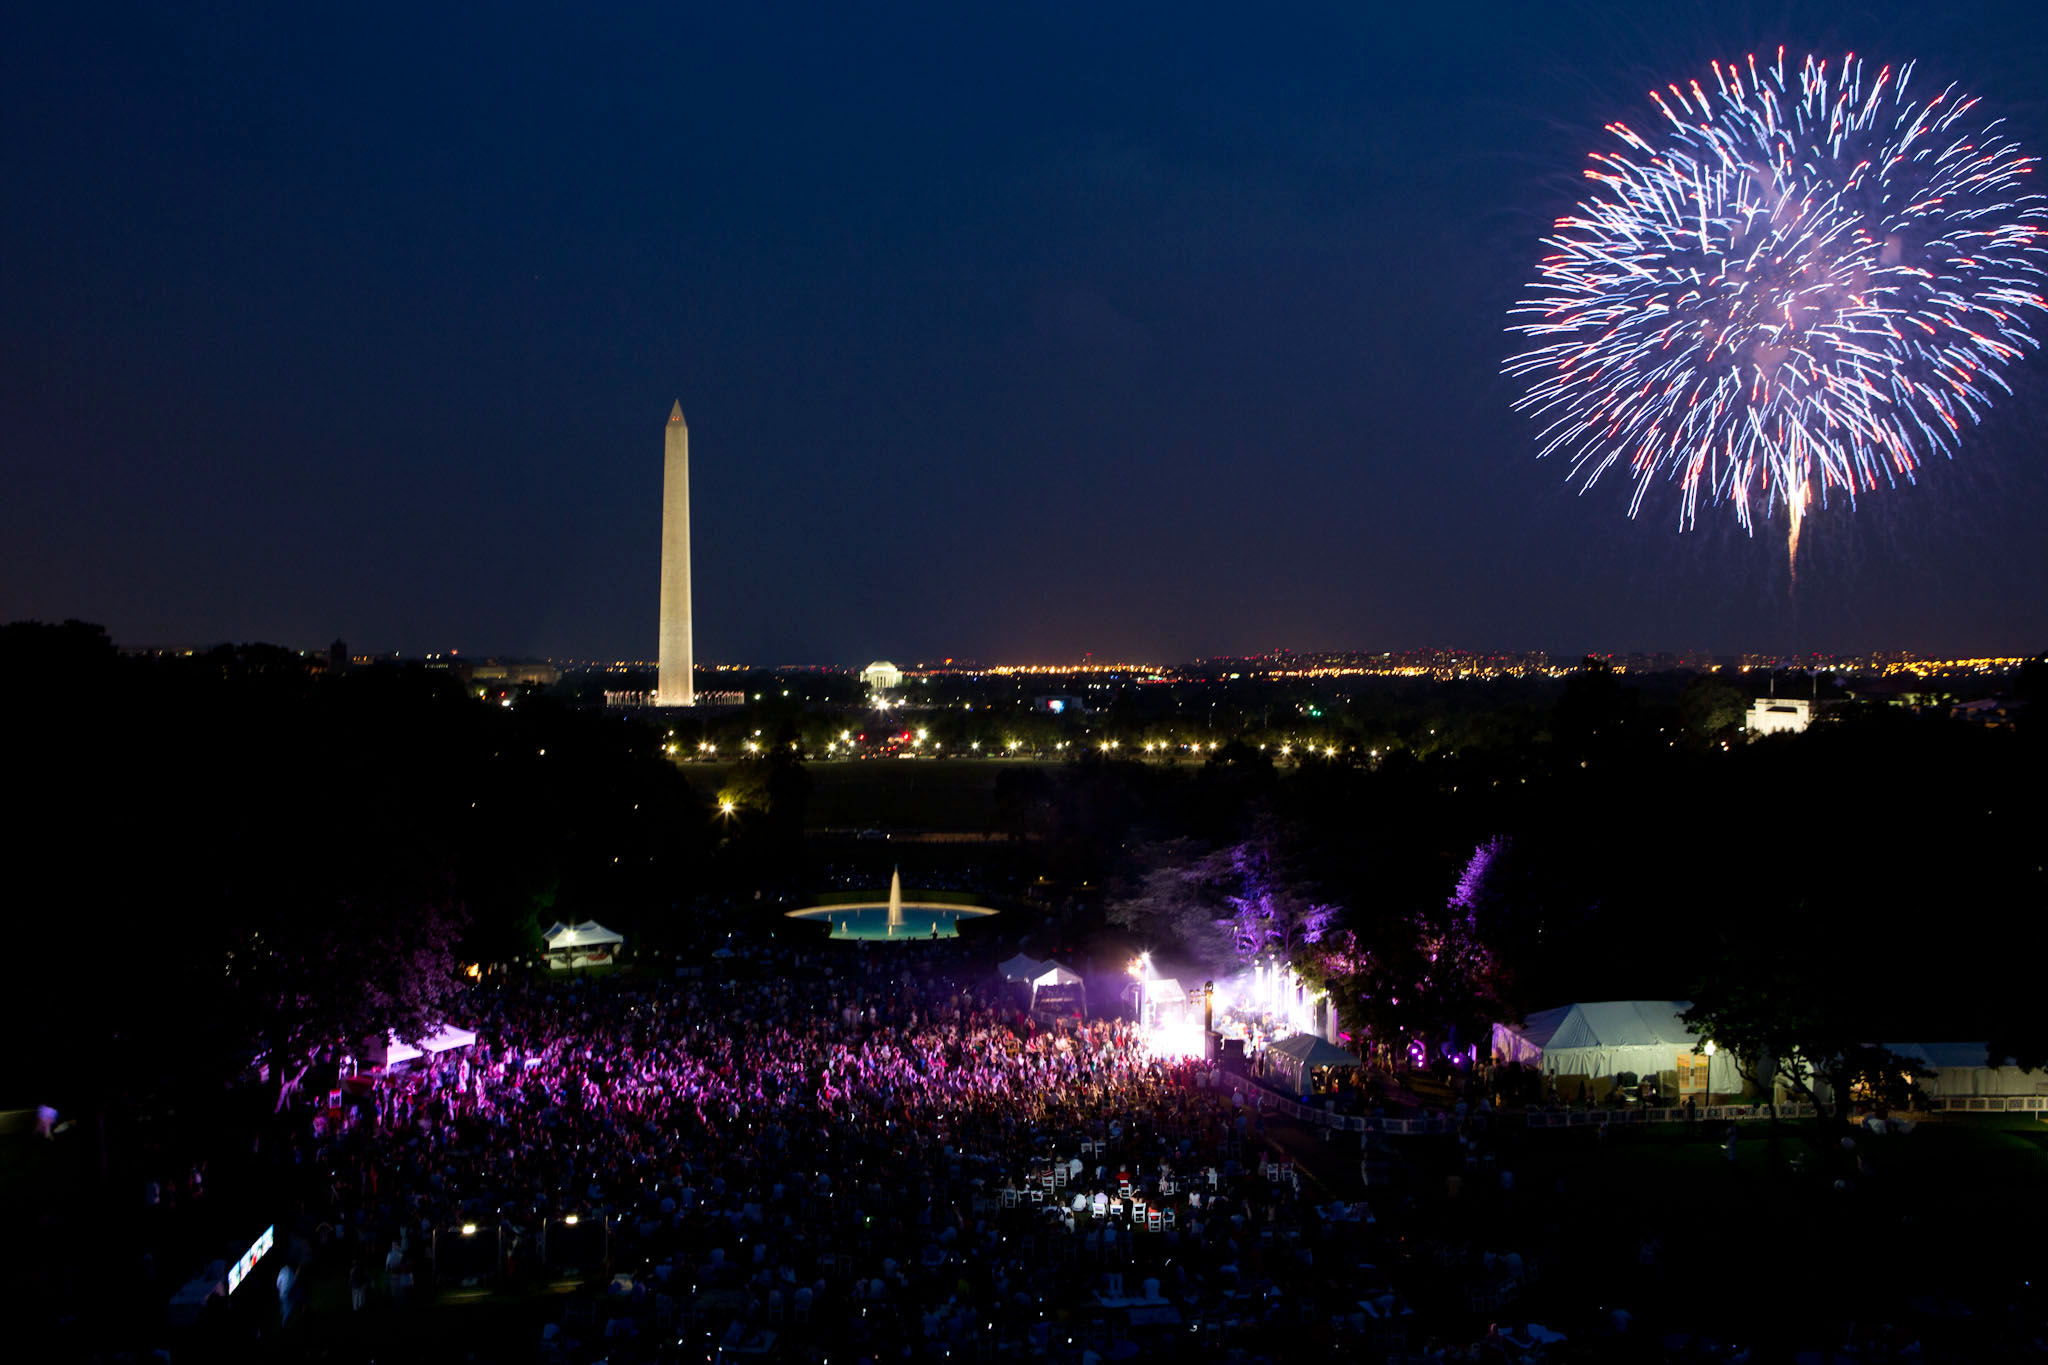 A crowd watches as fireworks erupt over the National Mall (July 4, 2012)